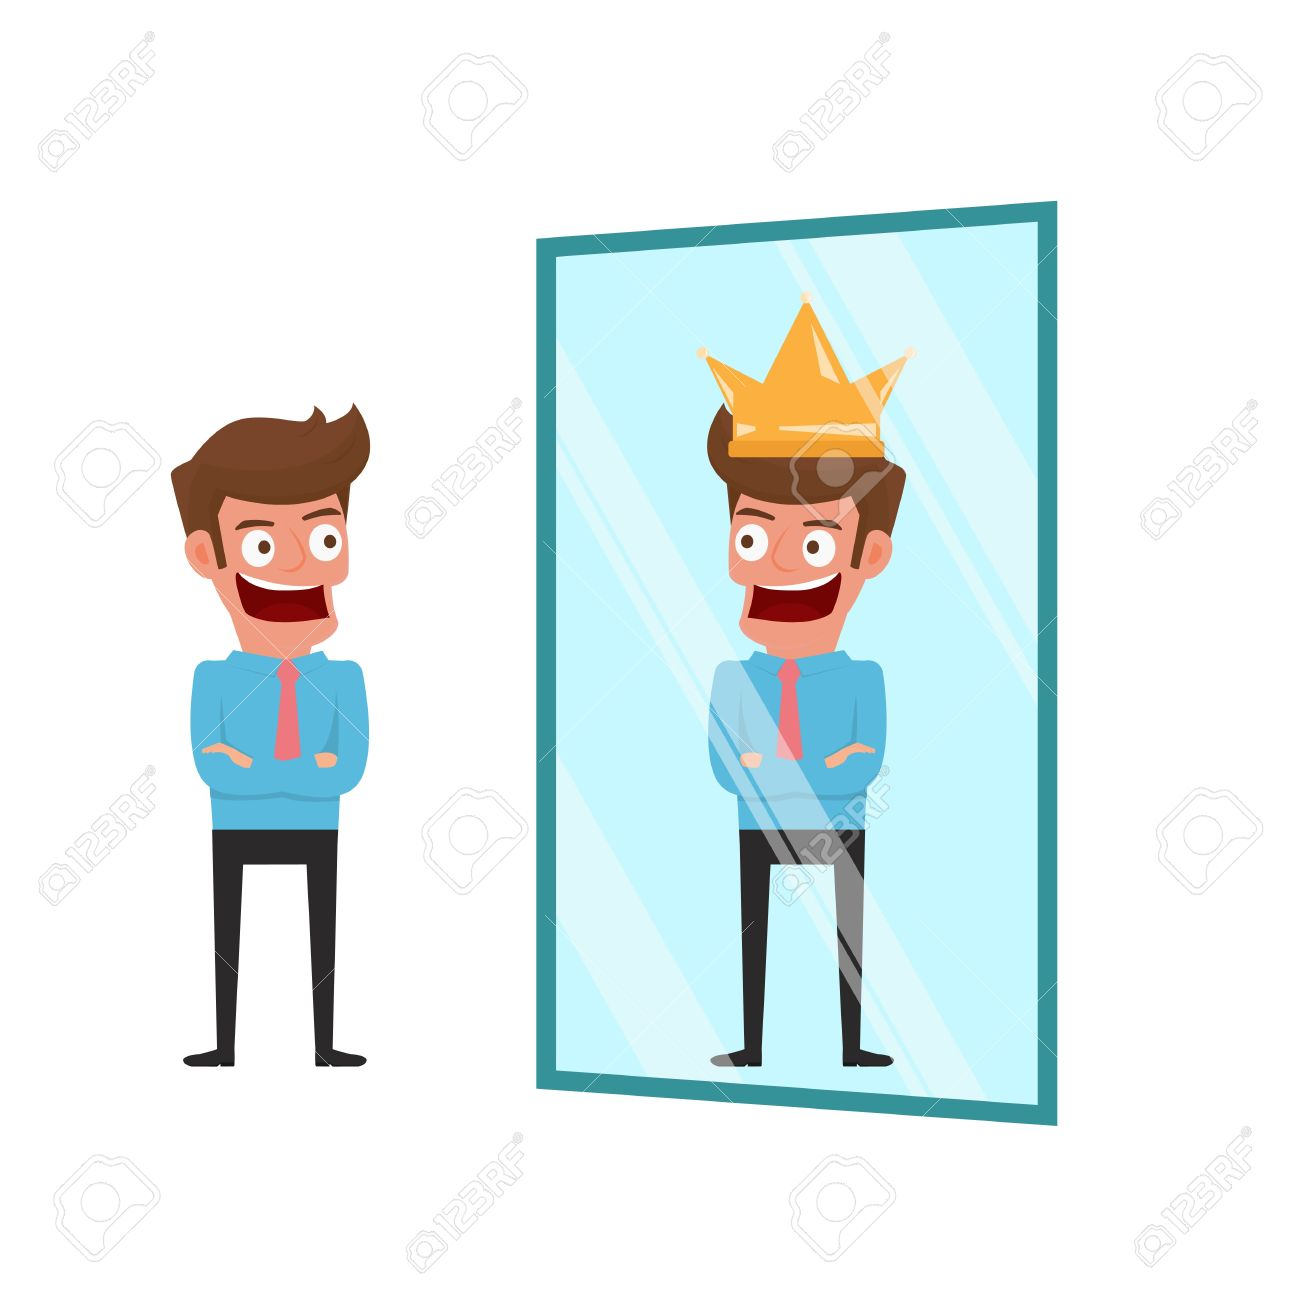 Businessman standing in front of mirror can see successful reflection. Business success concept. Cartoon Illustration. - 62241391